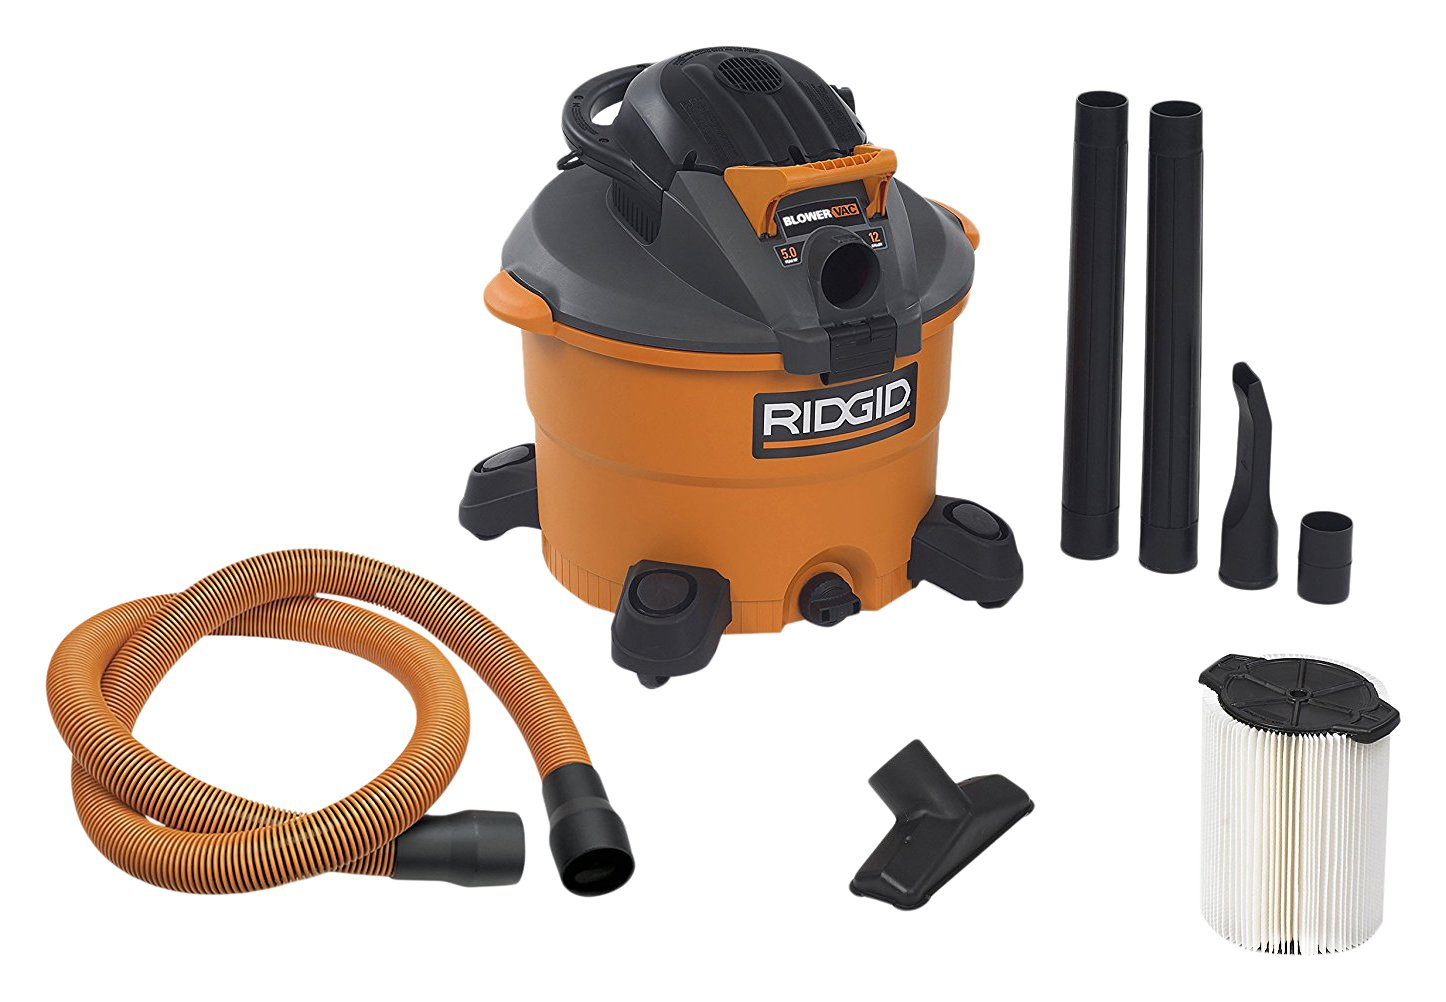 RIDGID Wet Dry Vacuums VAC1200 Heavy Duty Wet Dry Vacuum Cleaner and Blower Vac, 12-Gallon, 5.0 Peak Horsepower Detachable Leaf Blower Vacuum Cleaner with Pro-Grade Hose by Ridgid